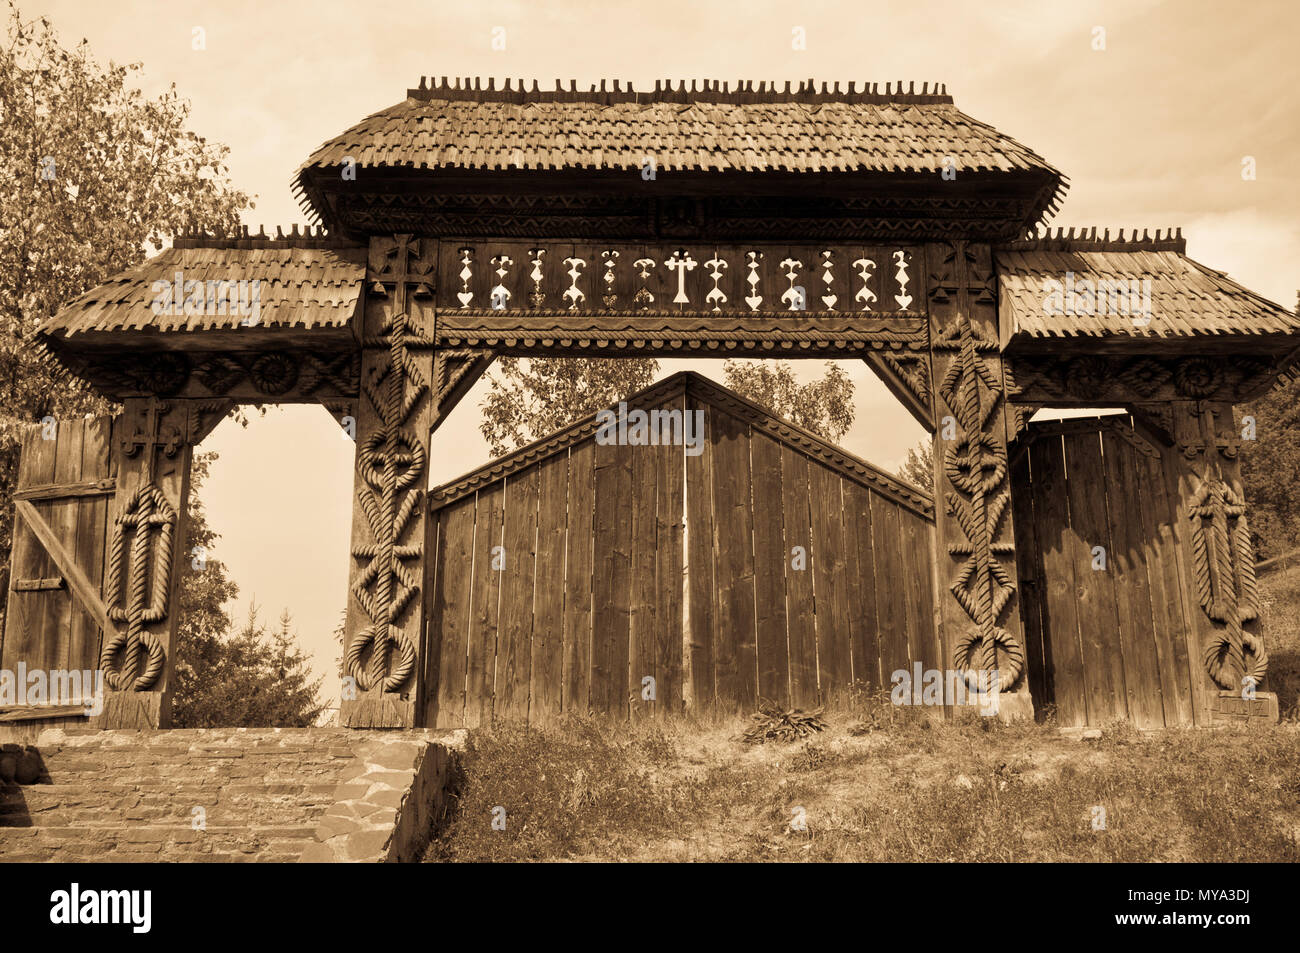 Traditional carved wooden gate from Maramures region, Romania, sepia tones. - Stock Image